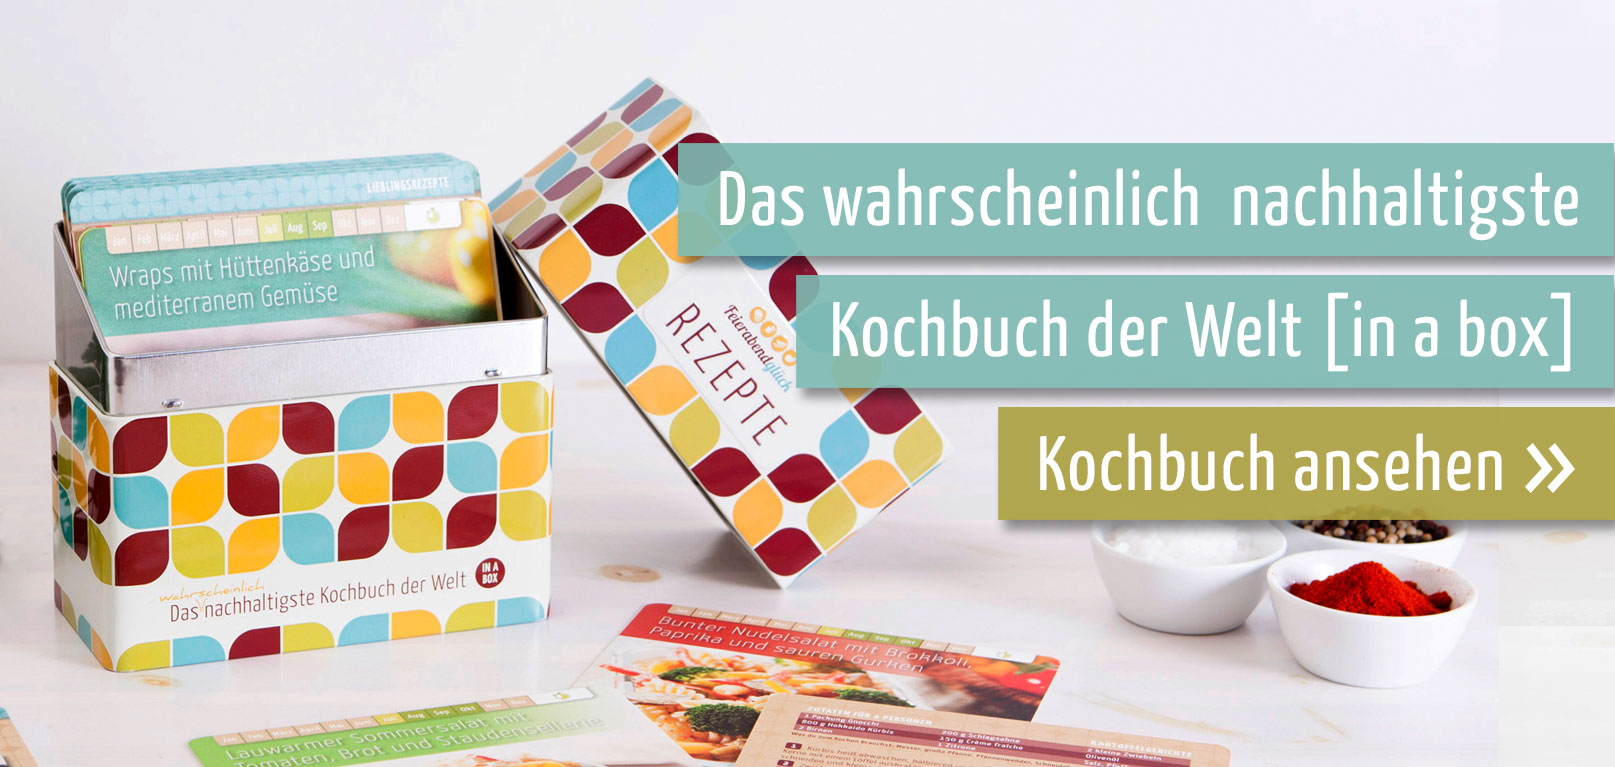 Kochbuch in a box